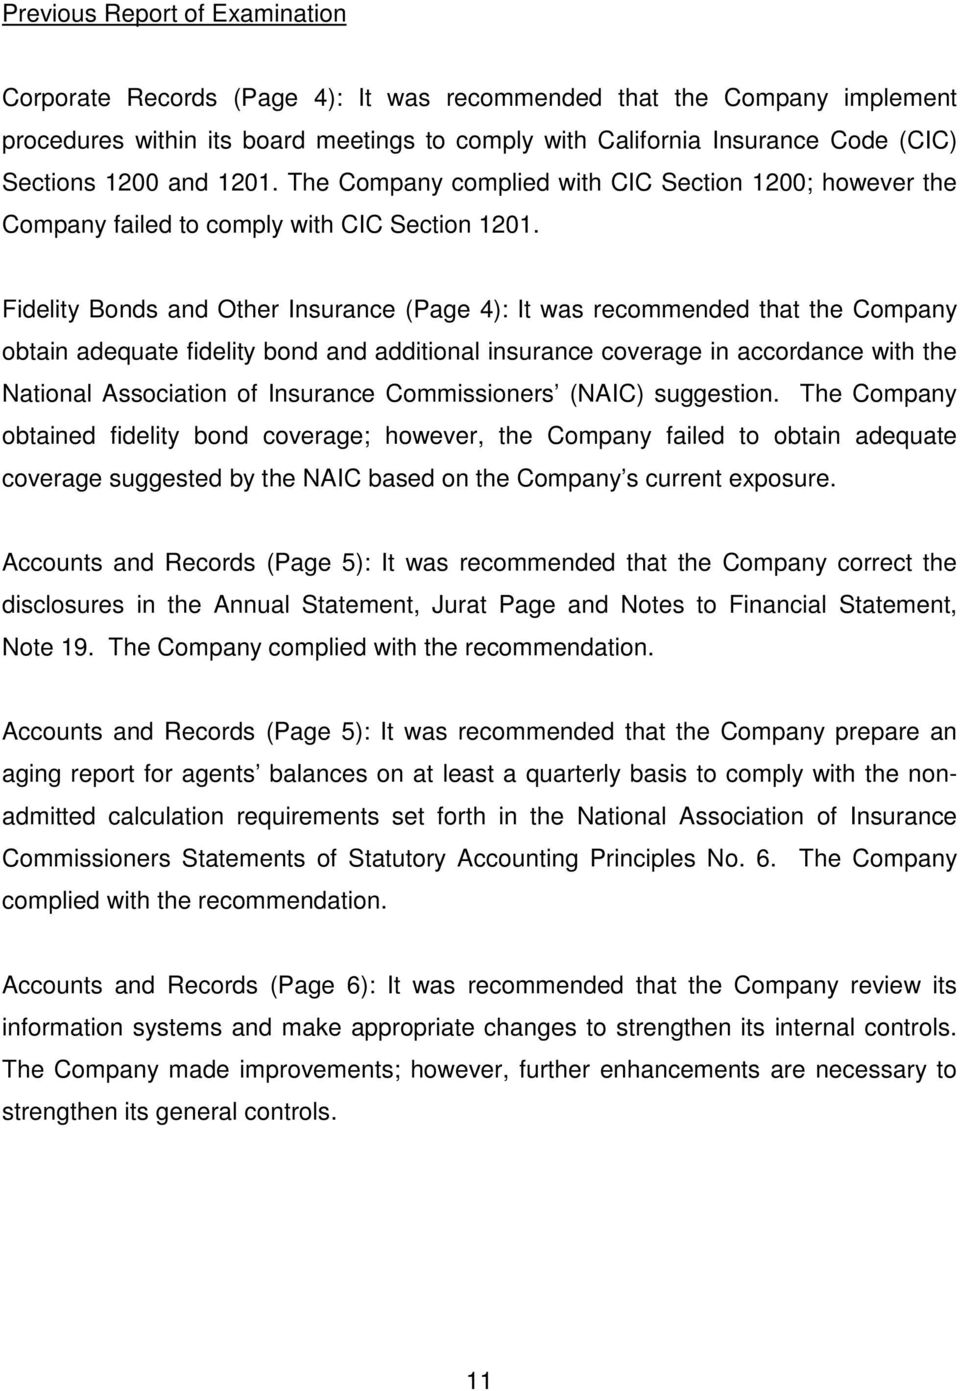 Fidelity Bonds and Other Insurance (Page 4): It was recommended that the Company obtain adequate fidelity bond and additional insurance coverage in accordance with the National Association of